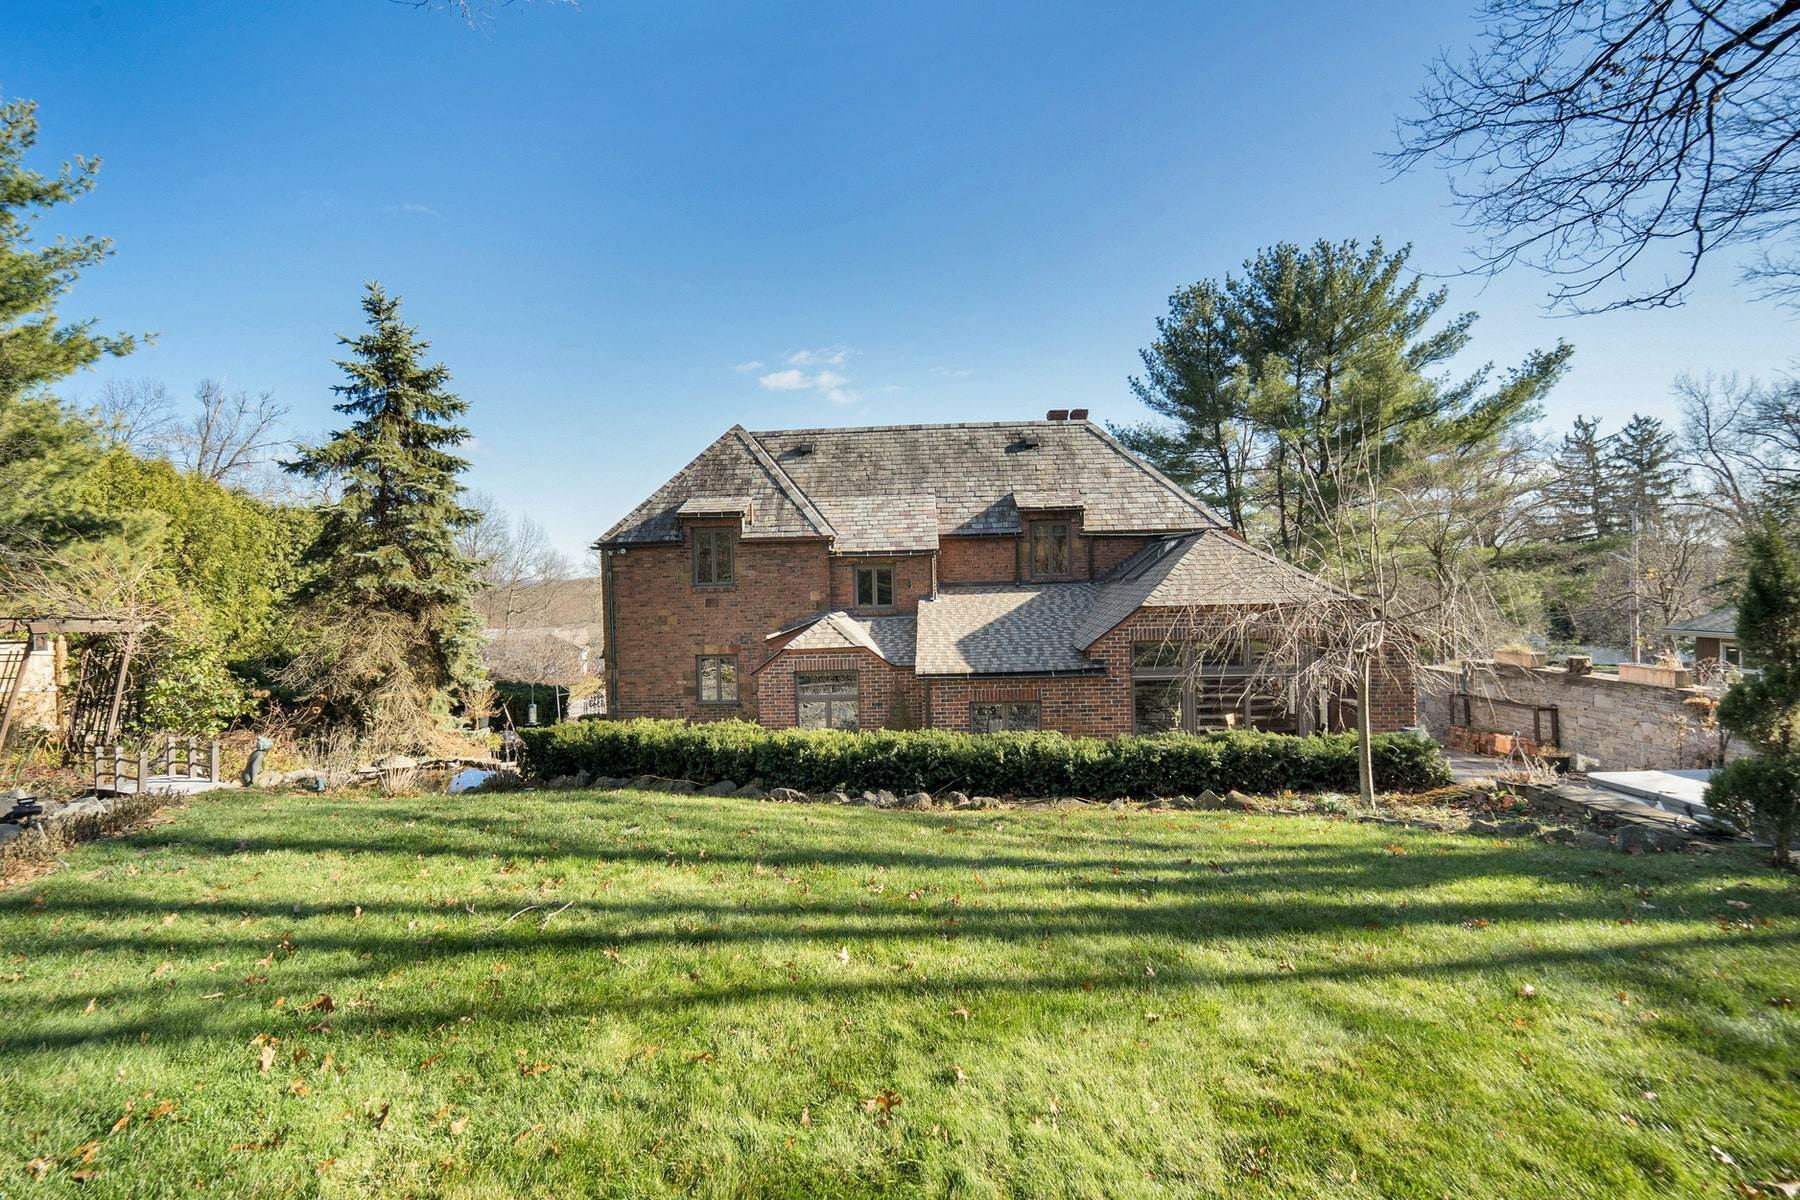 25. Single Family Homes for Sale at Village Brick Tudor 17 Wisner Terrace Goshen, New York 10924 United States